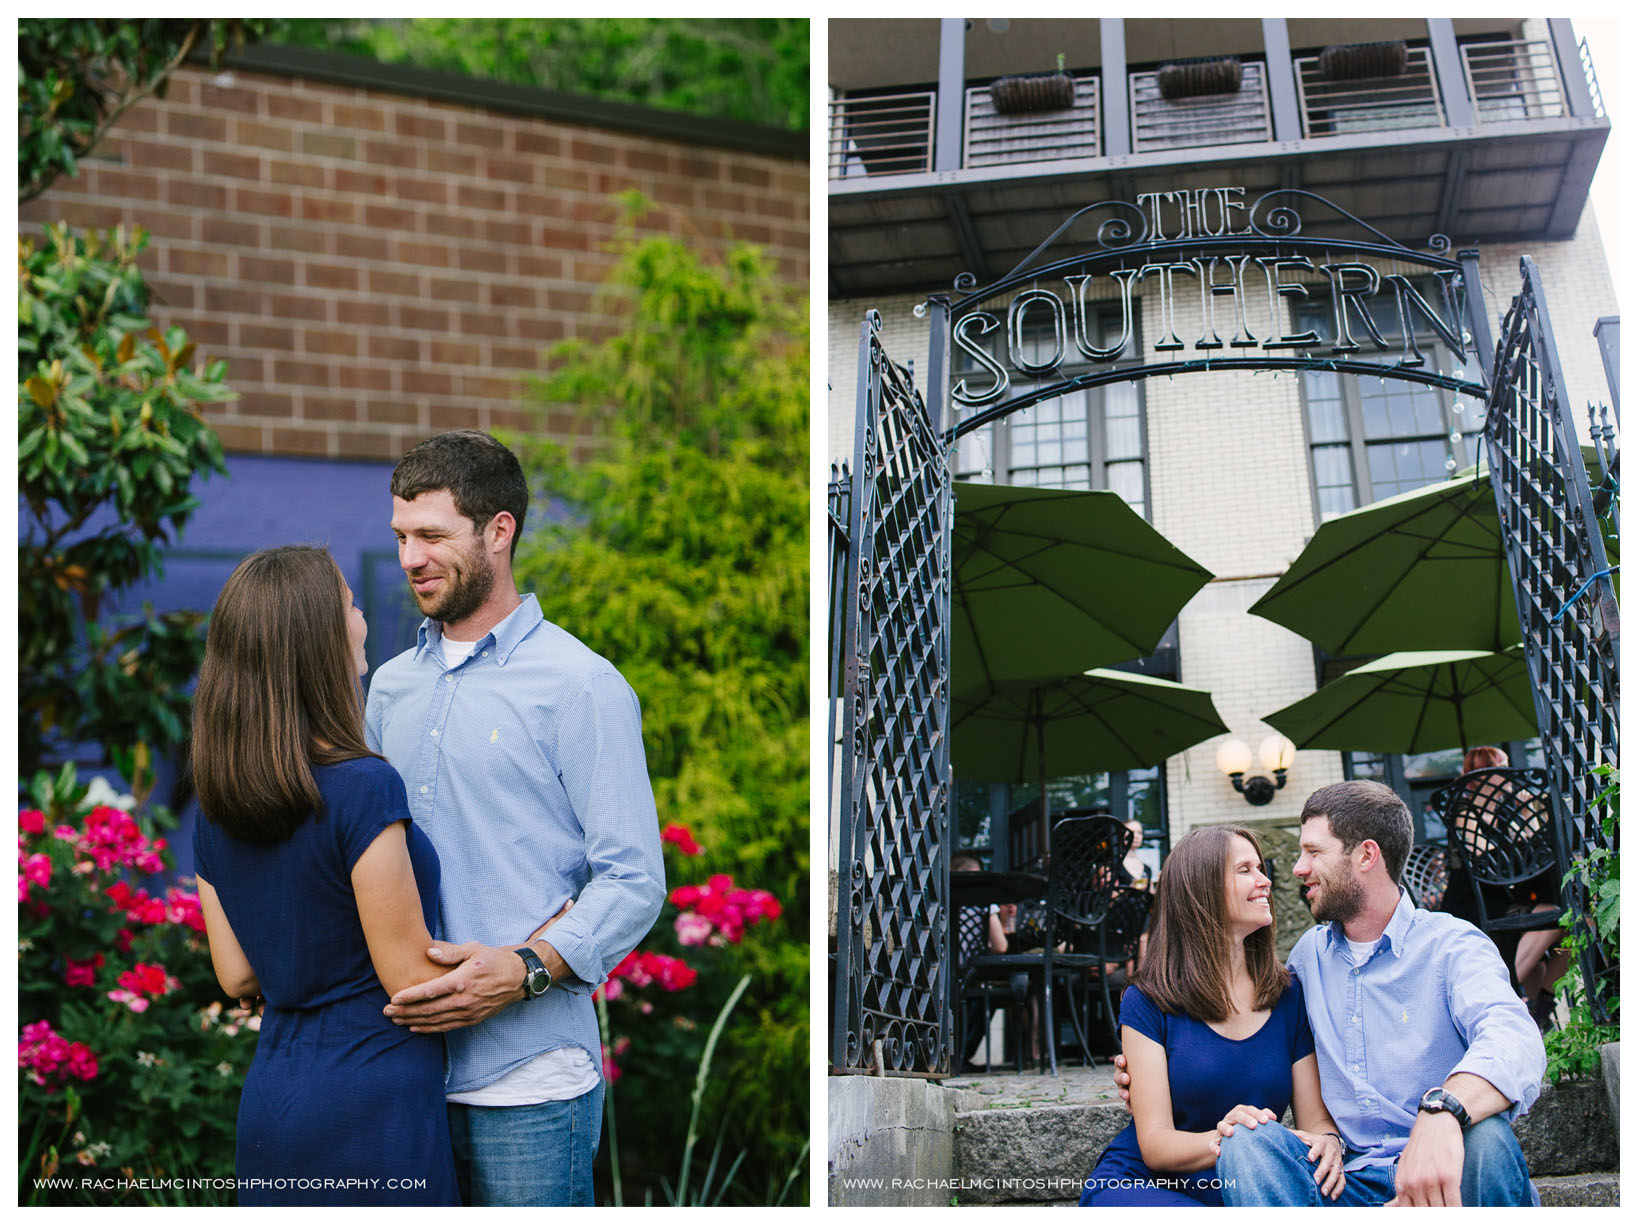 Down Town Asheville Engagement Session- Asheville Wedding Photography-23.jpg